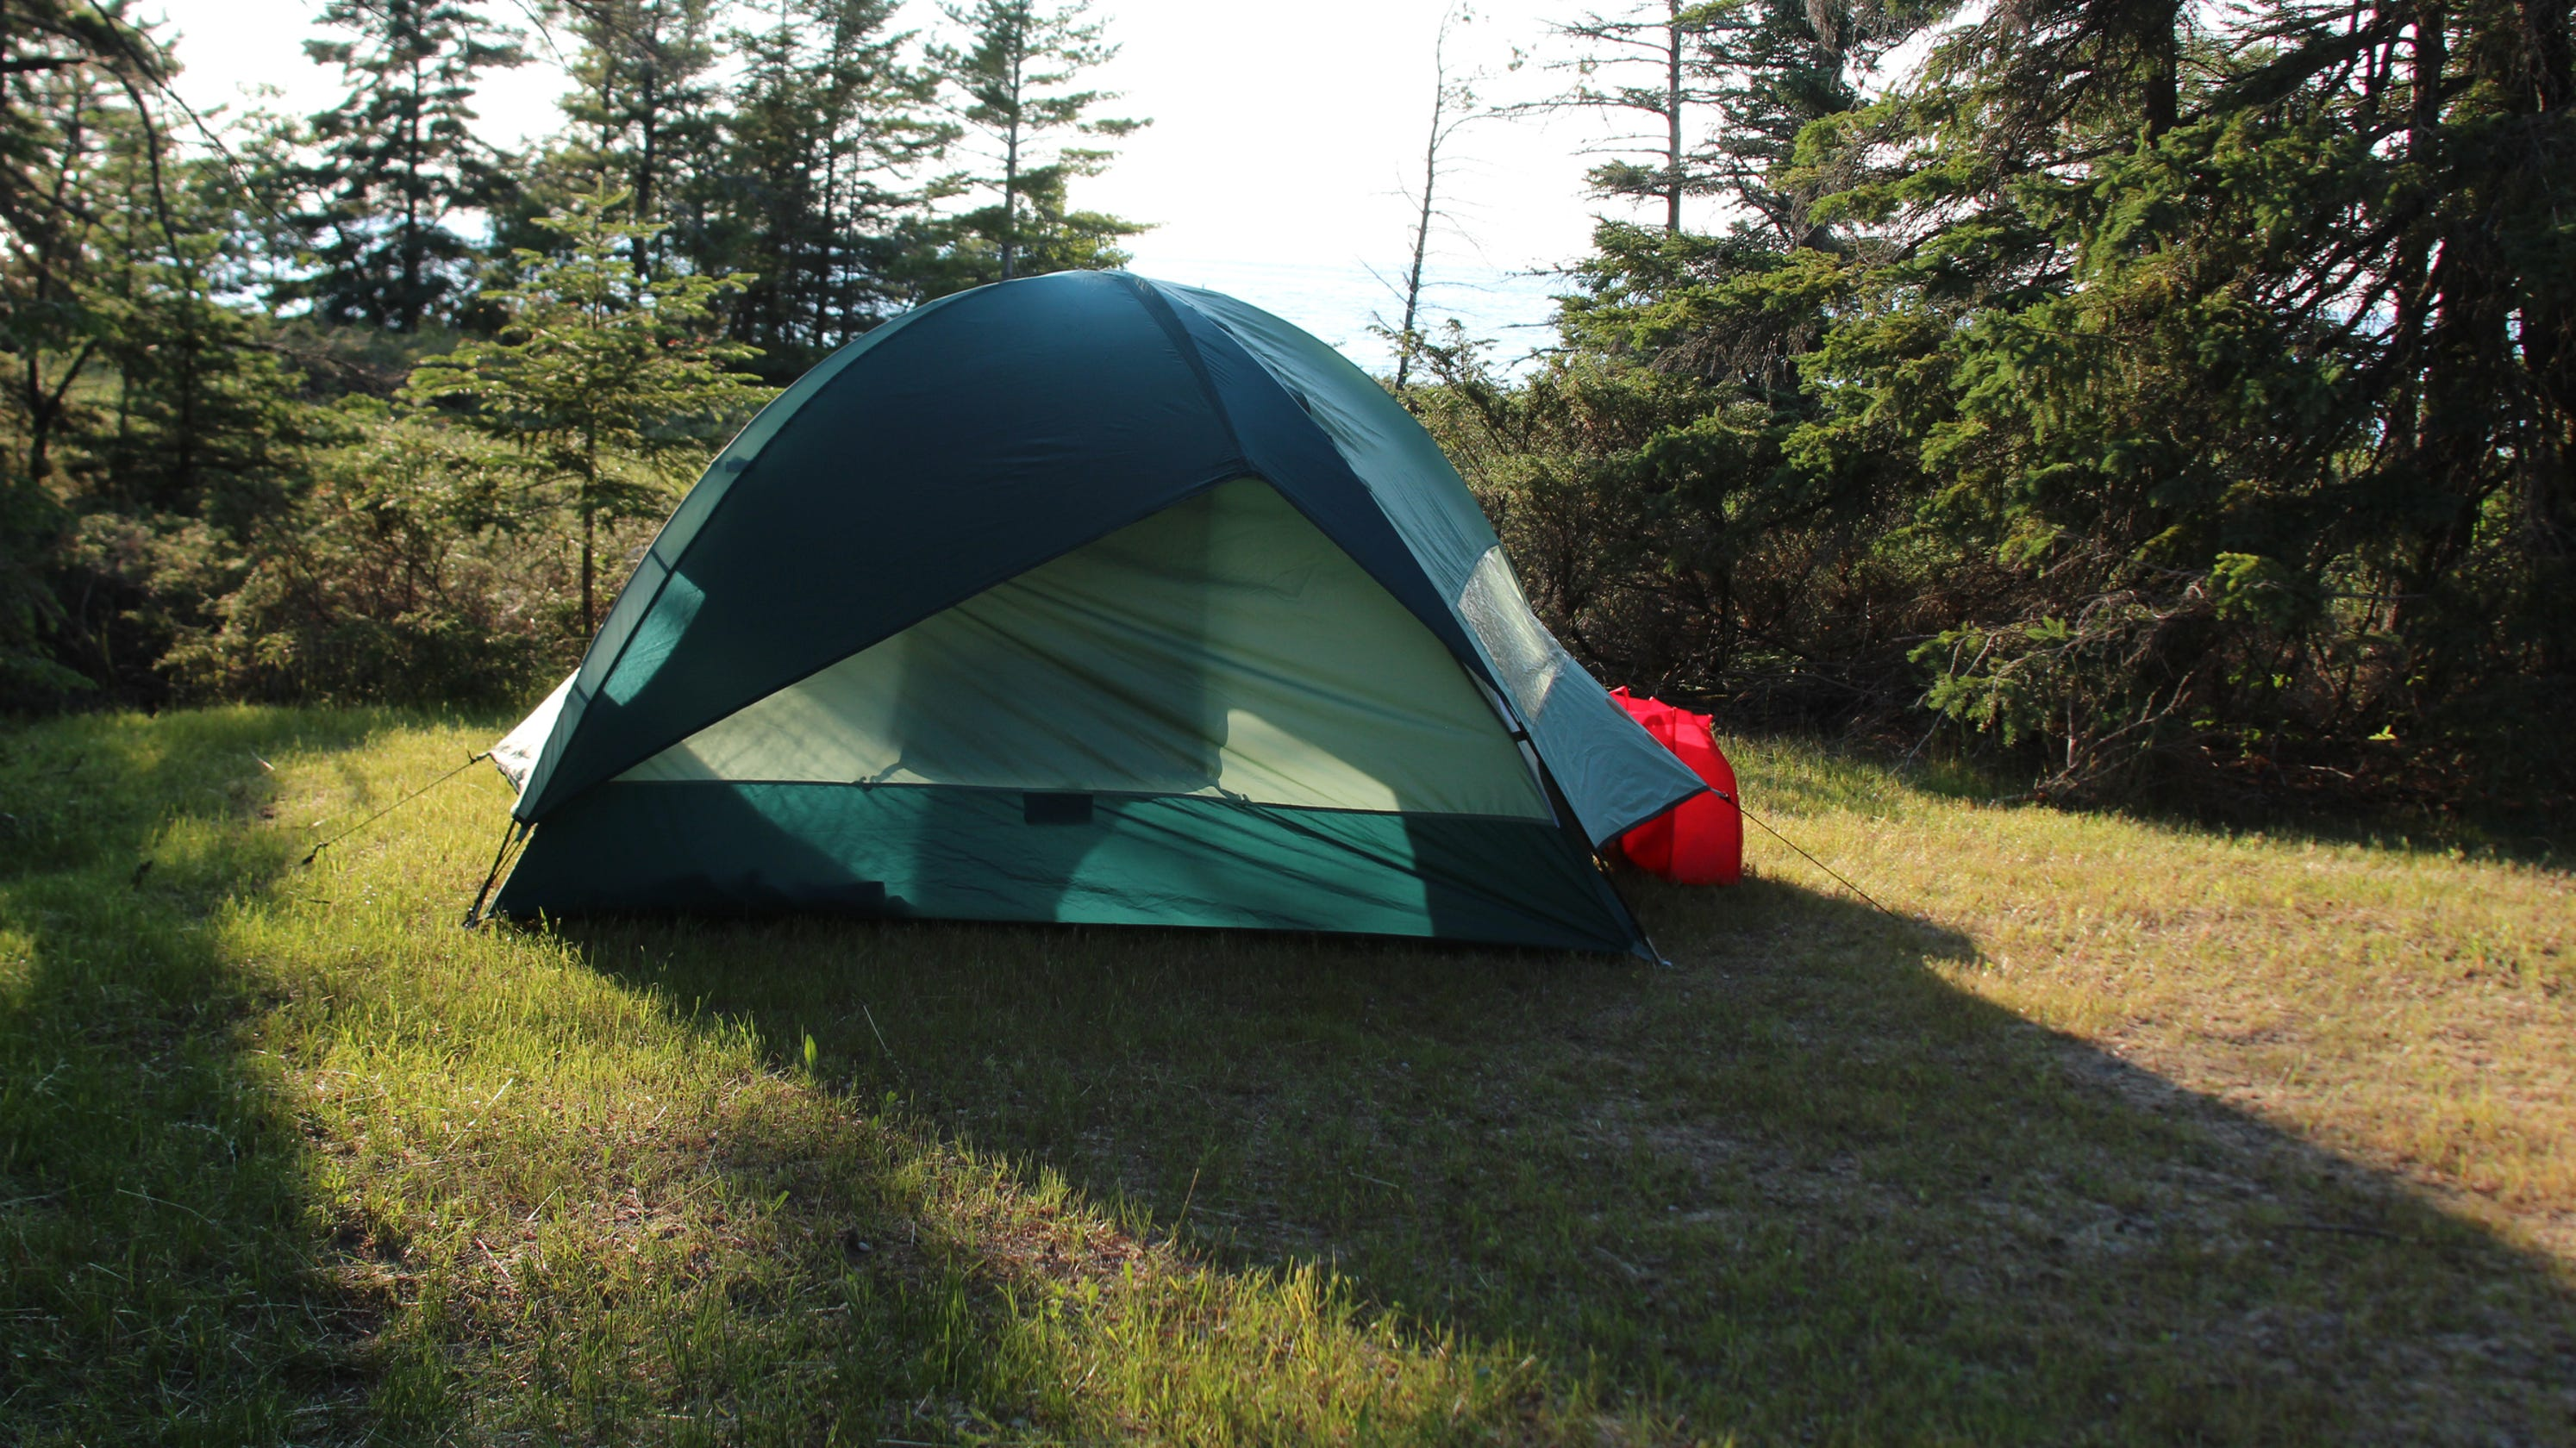 Michigan state park camping reservations: Book 2019 sites now